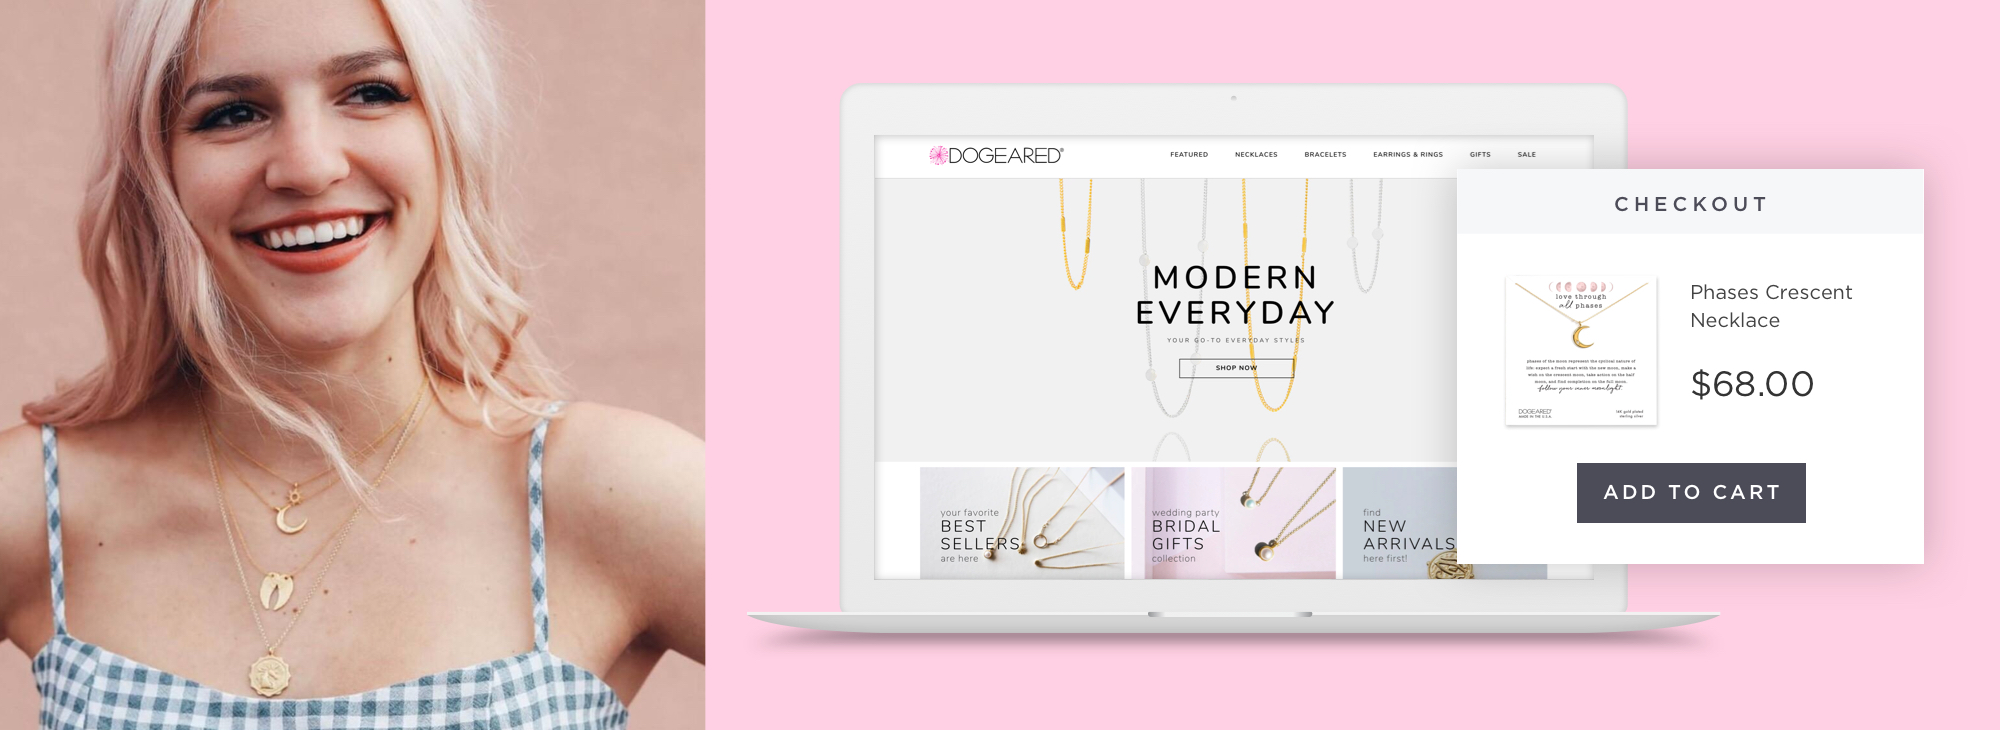 How To Sell Jewlery Online